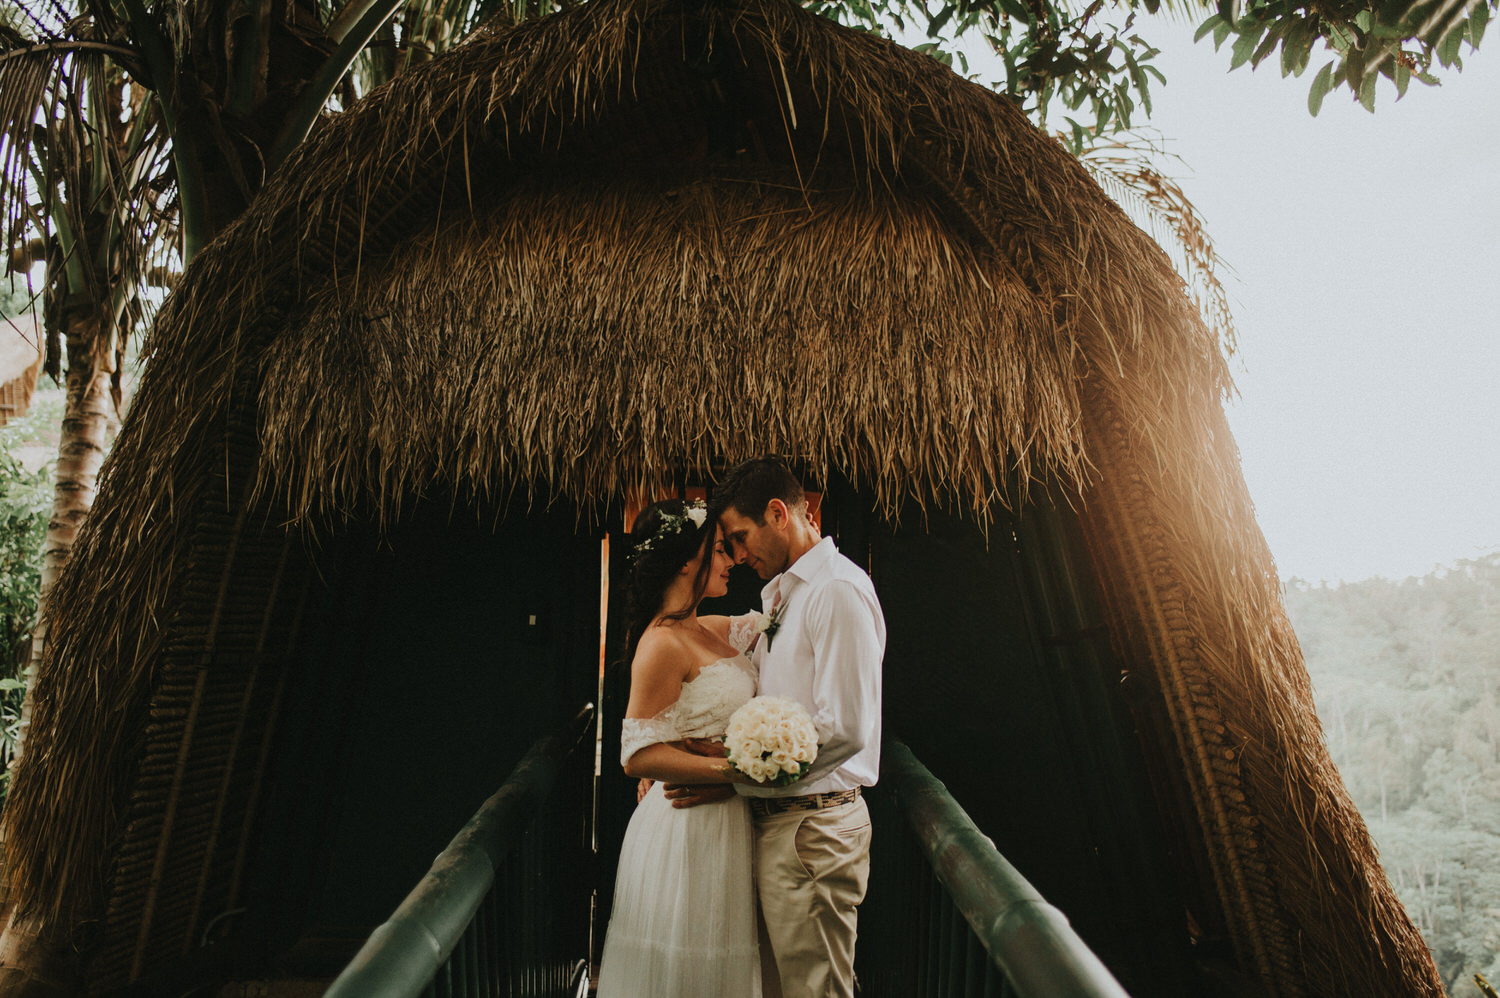 bali wedding - elopement - ubud wedding - diktatphotography - olga + Jason - 68